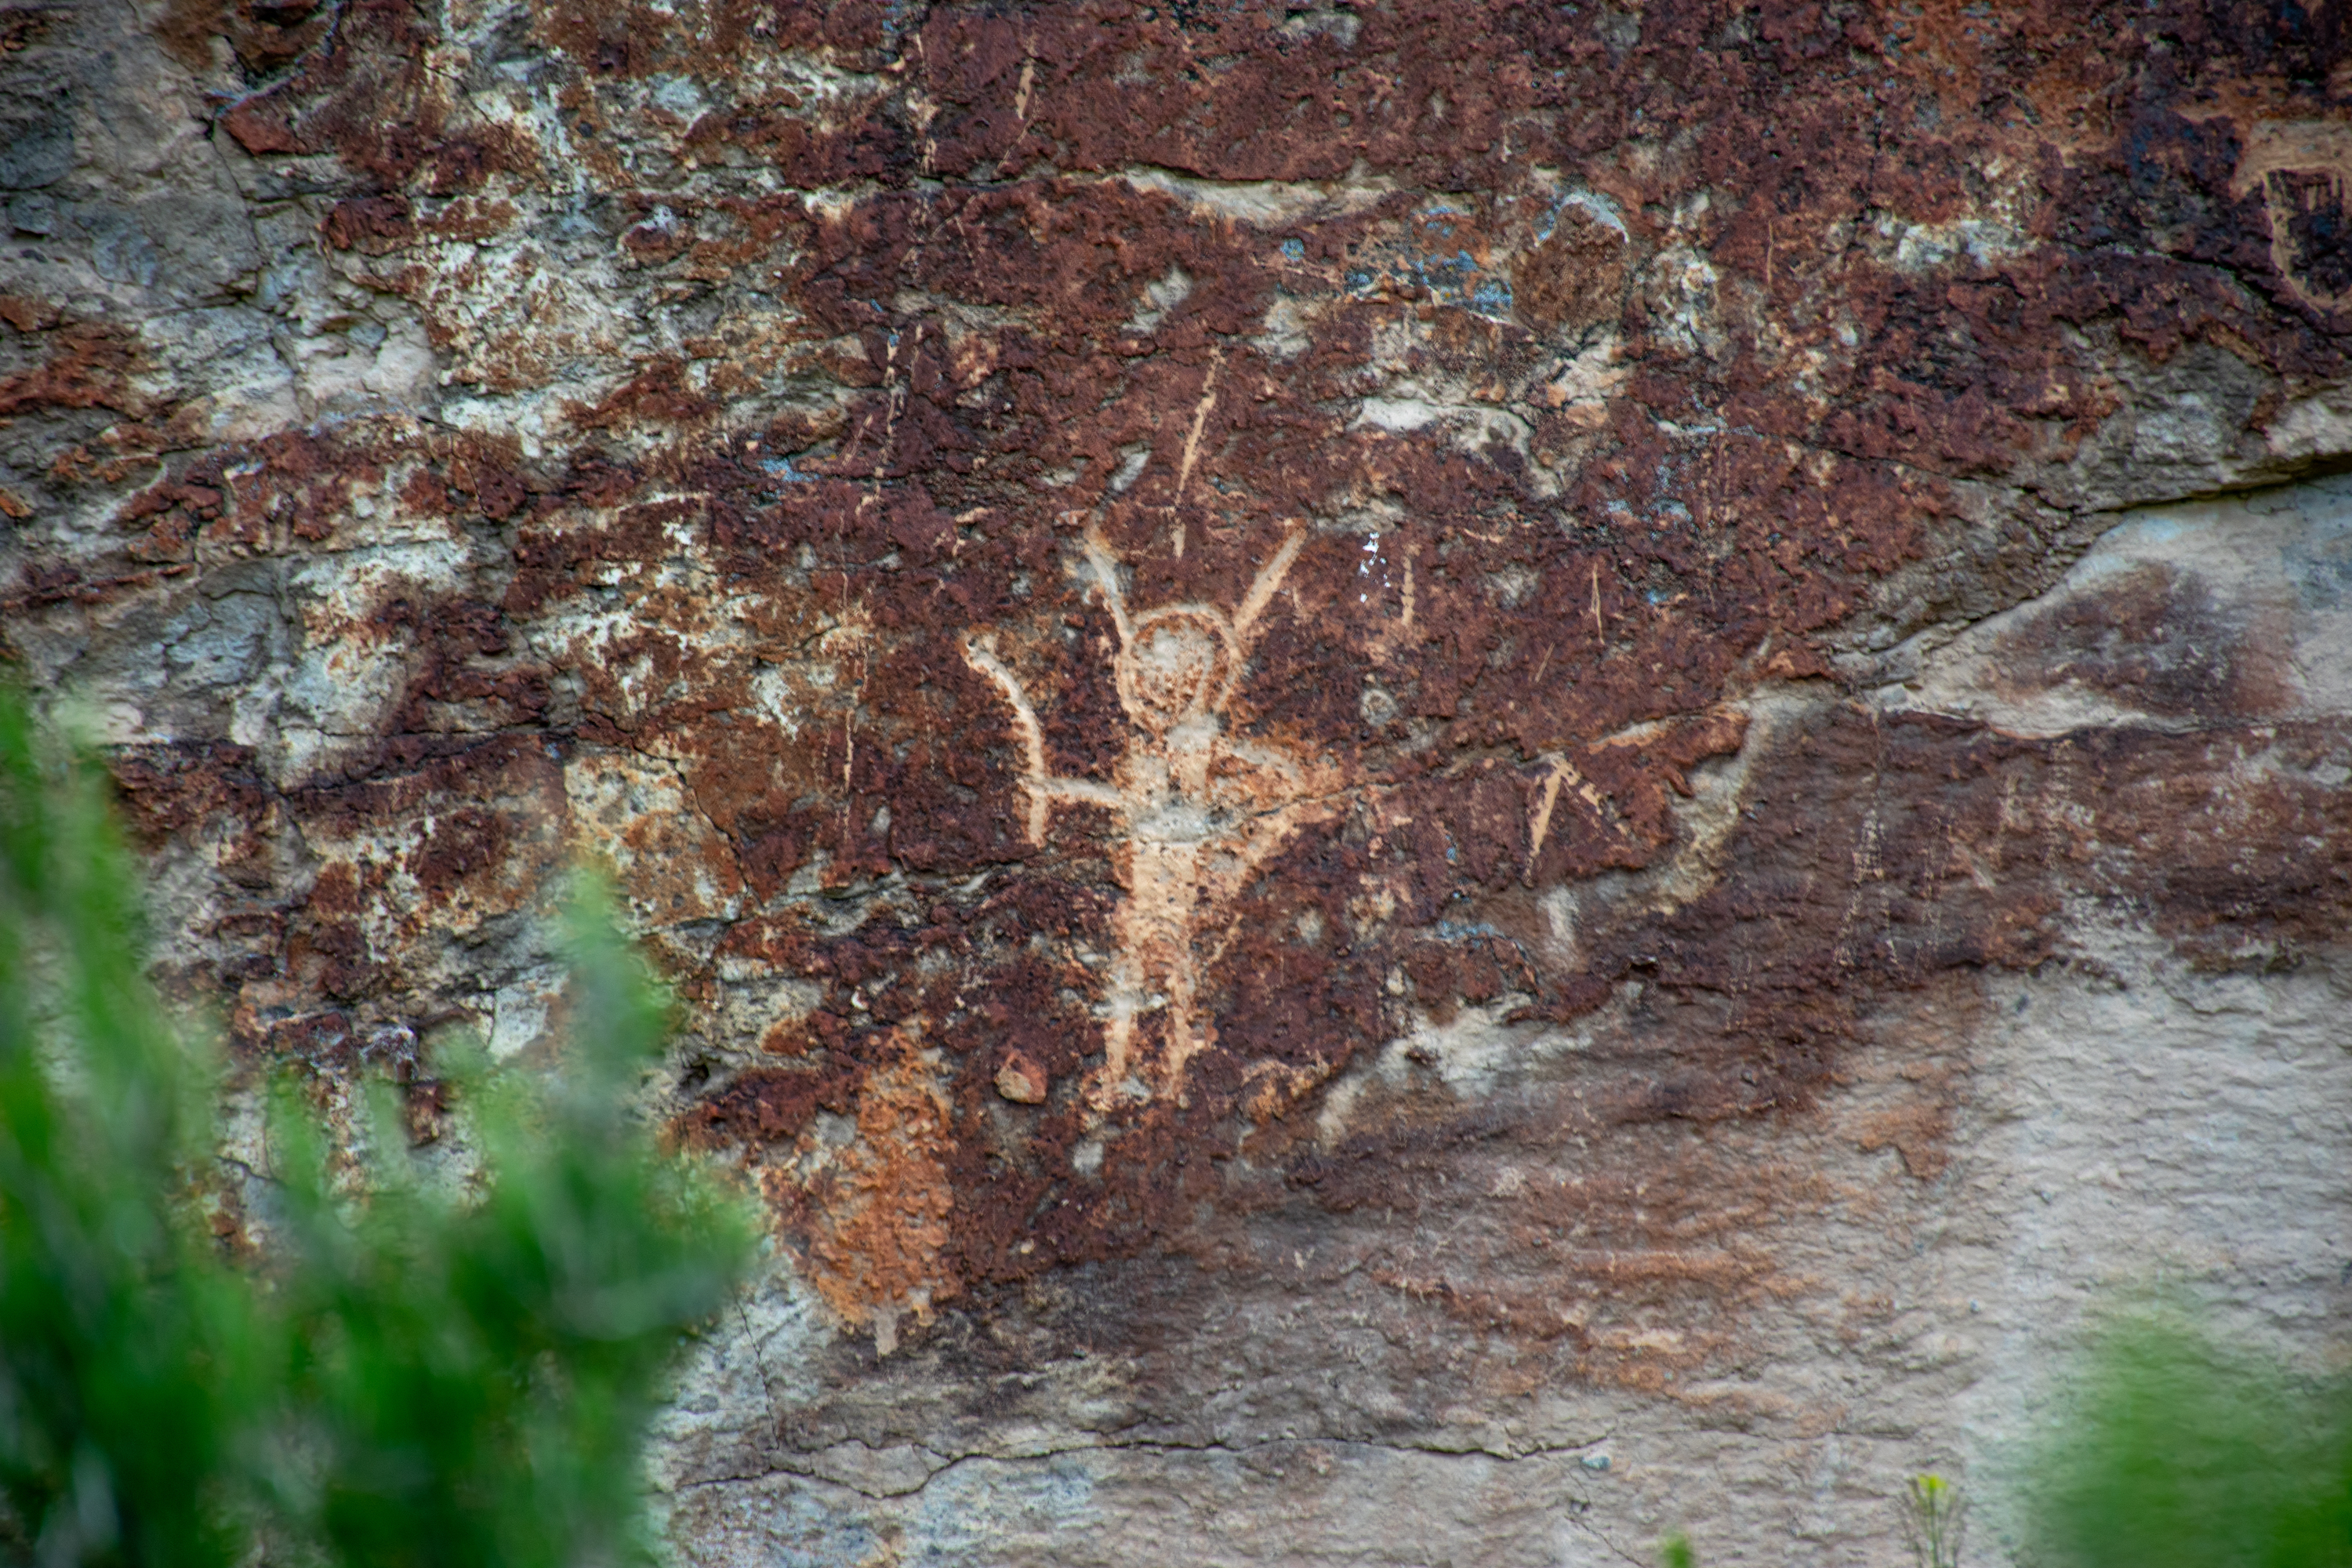 A humanoid figure drawing on a rock wall